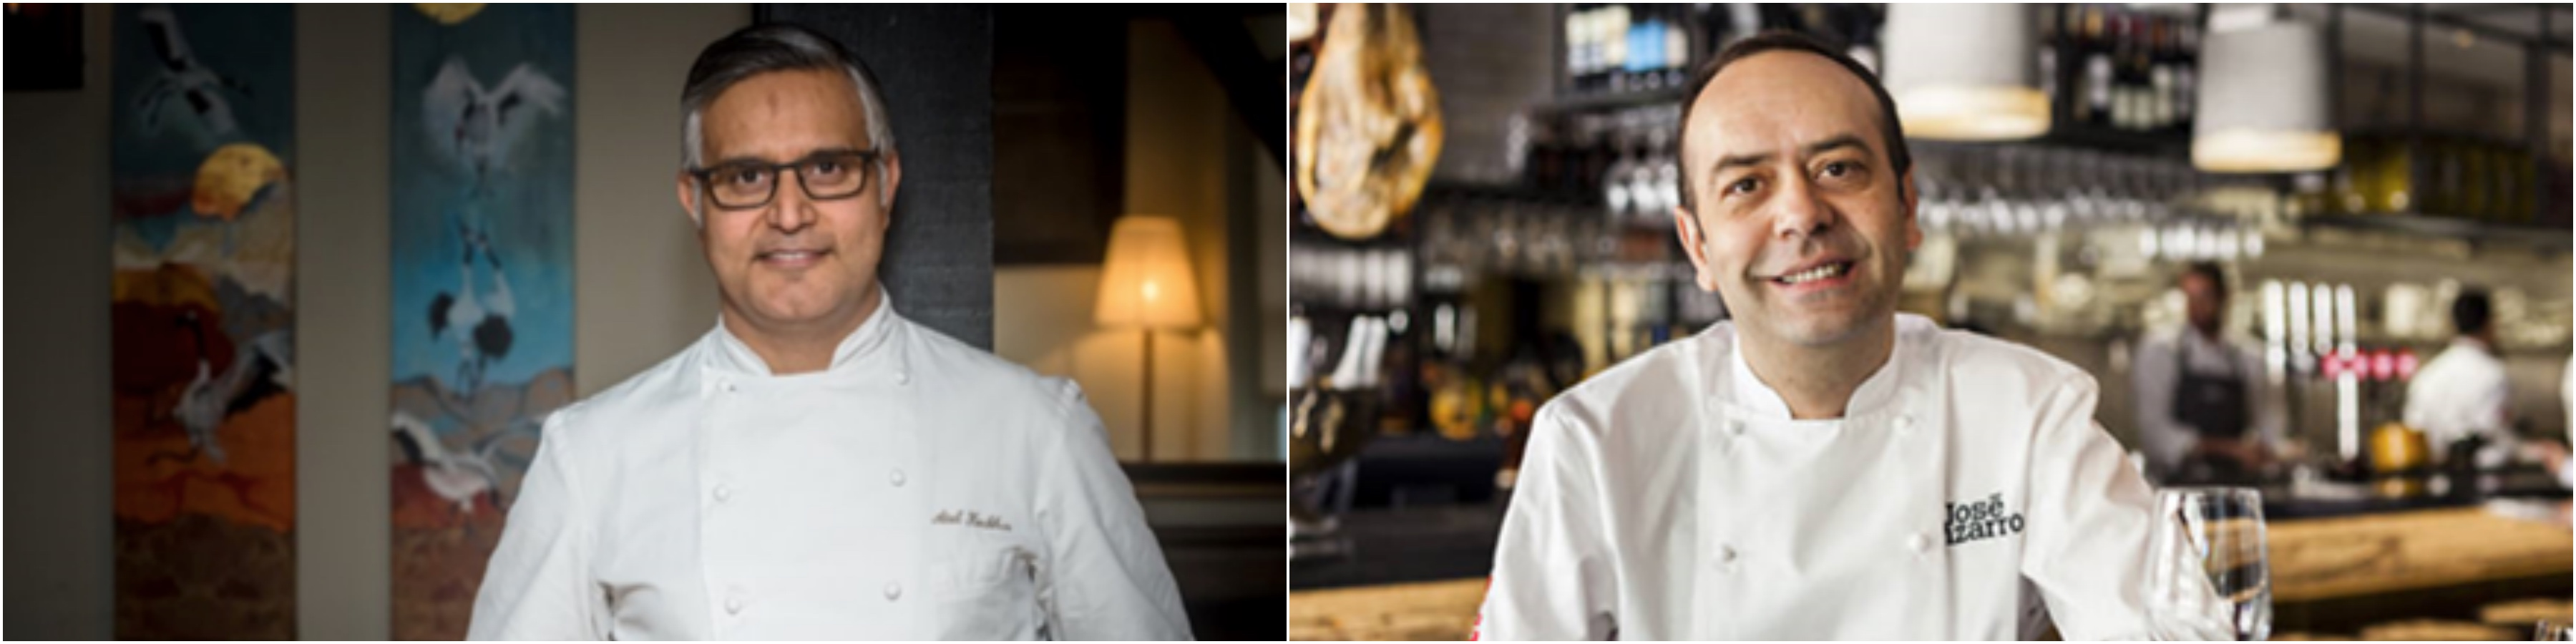 The Luxe List November 2019 - The Kanishka Guest Series with Jose Pizarro and Atul Kochar